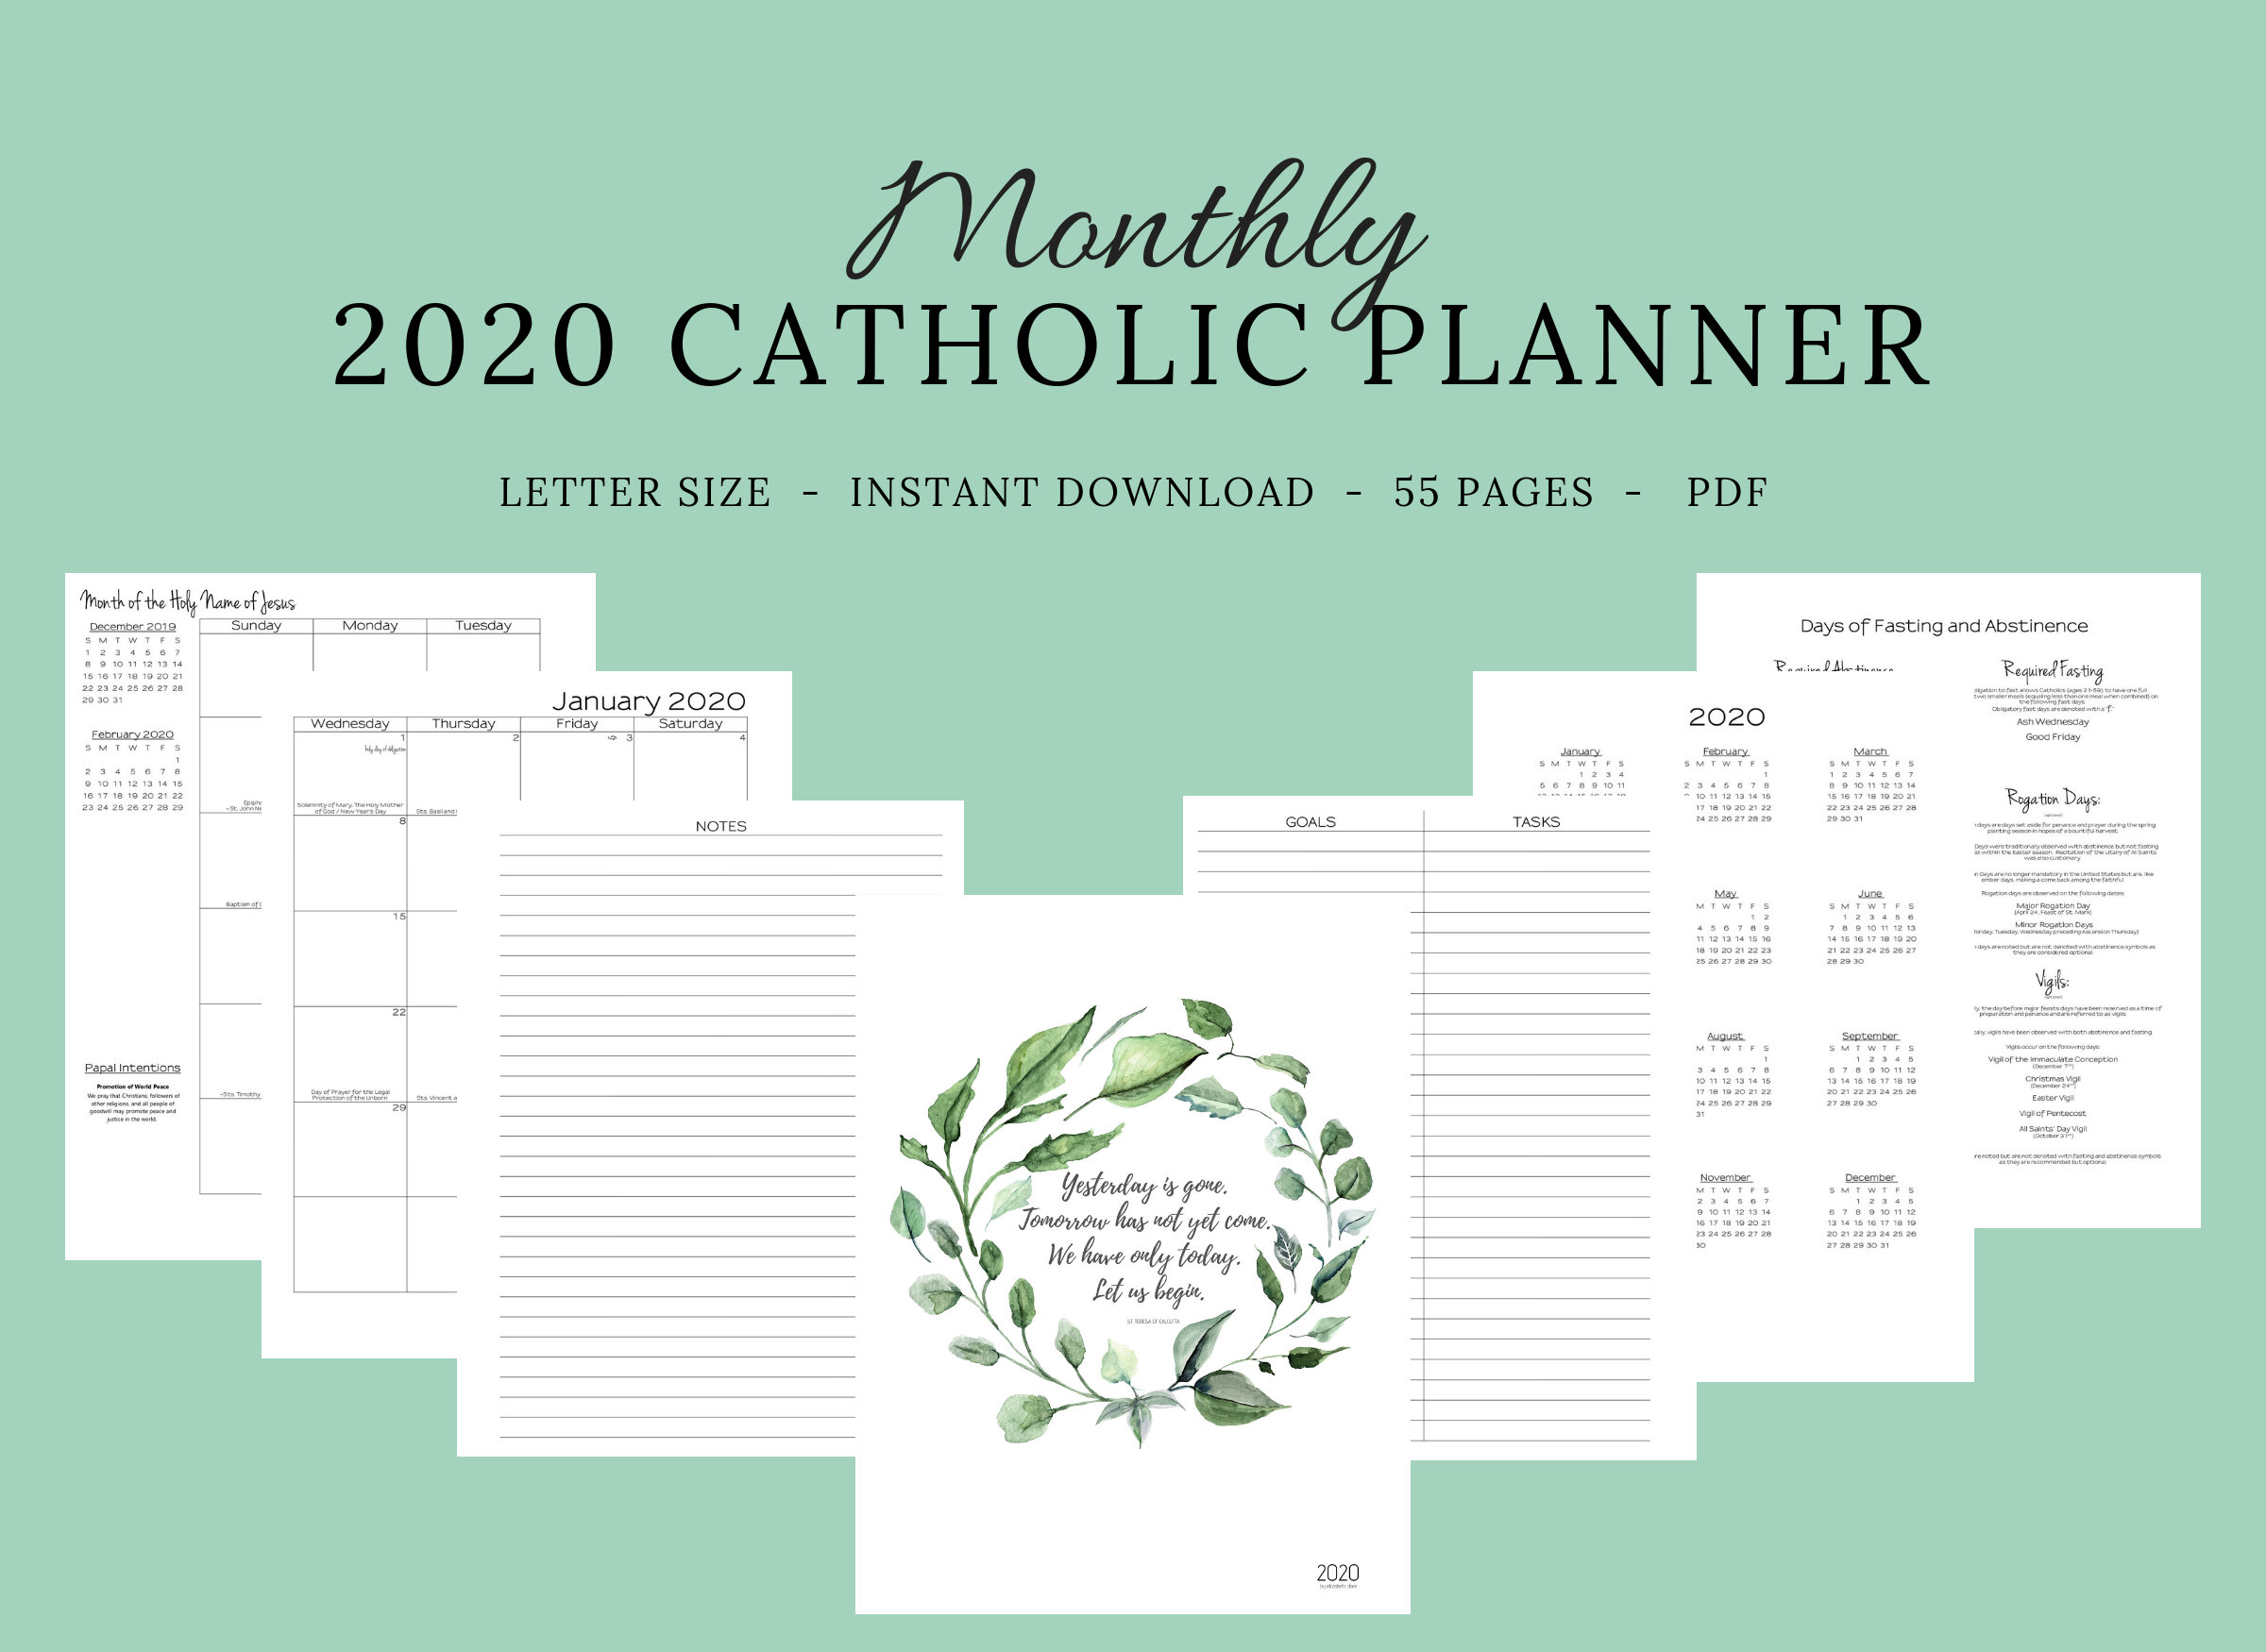 2020 Catholic Planner Monthly Printable: Monthly Planner / | Etsy with regard to Free Catholic Liturgical Calendar For 2020